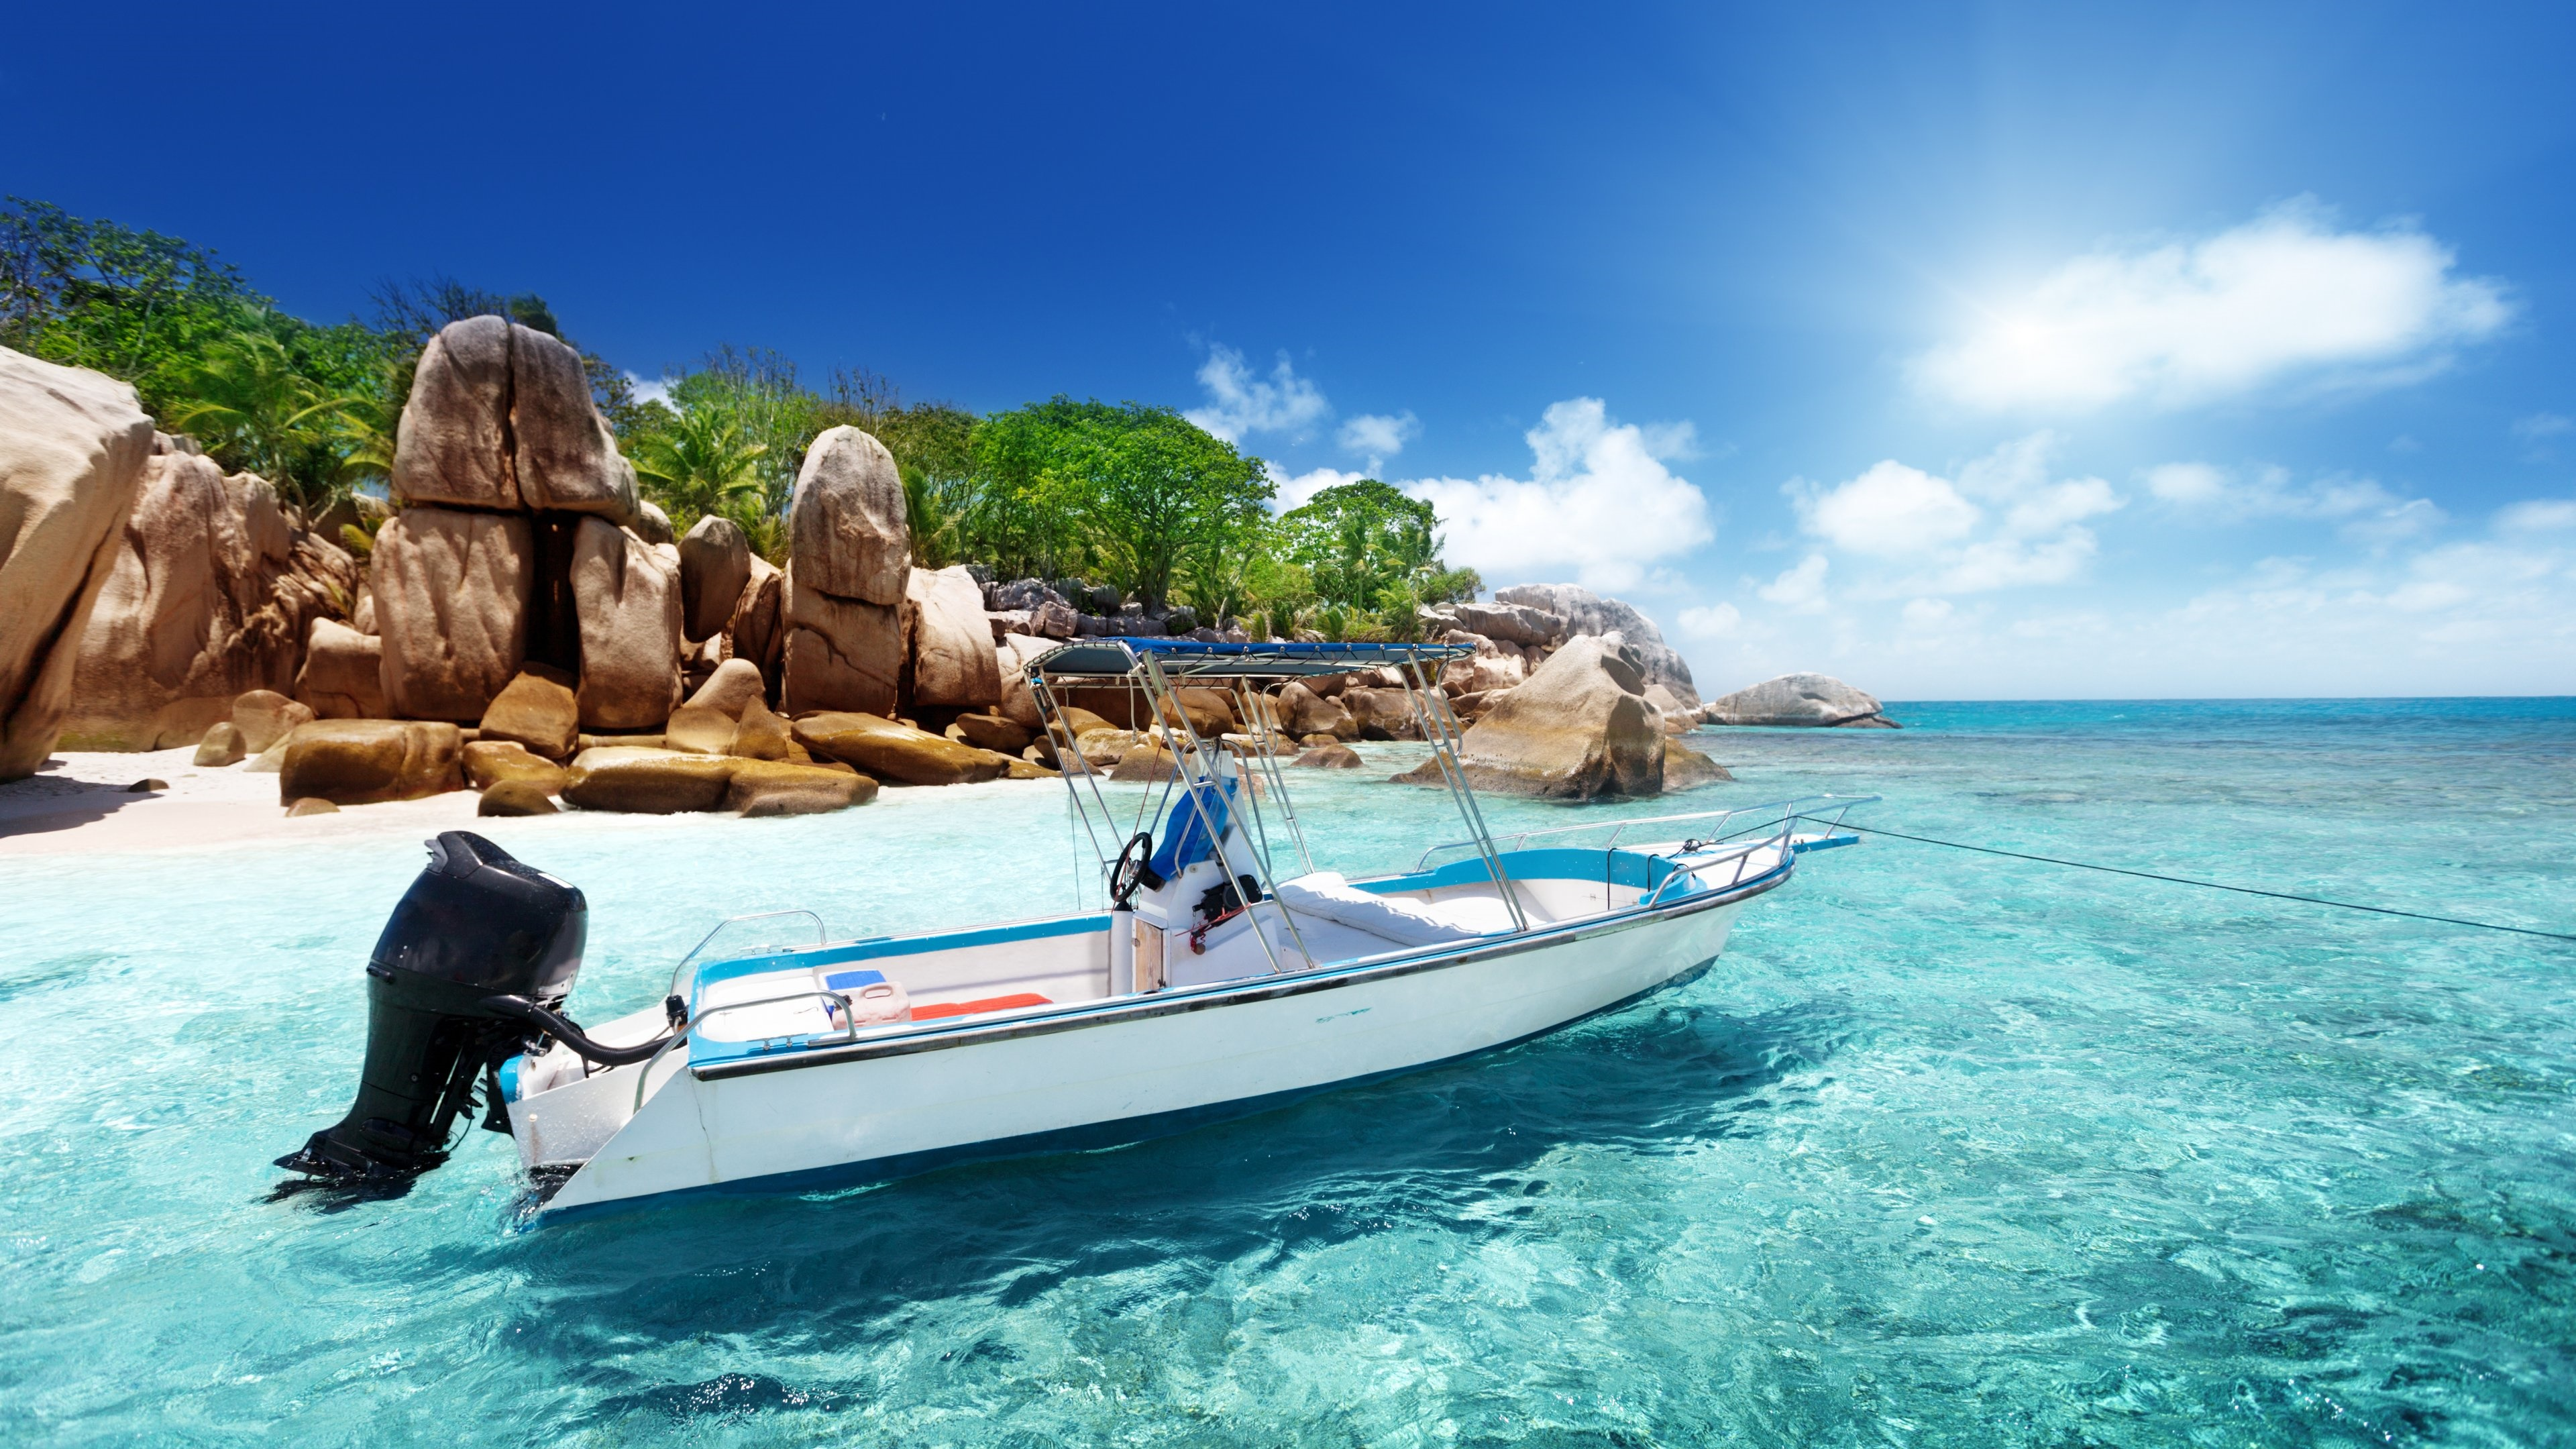 Motorboat on the crystal clear water wallpaper